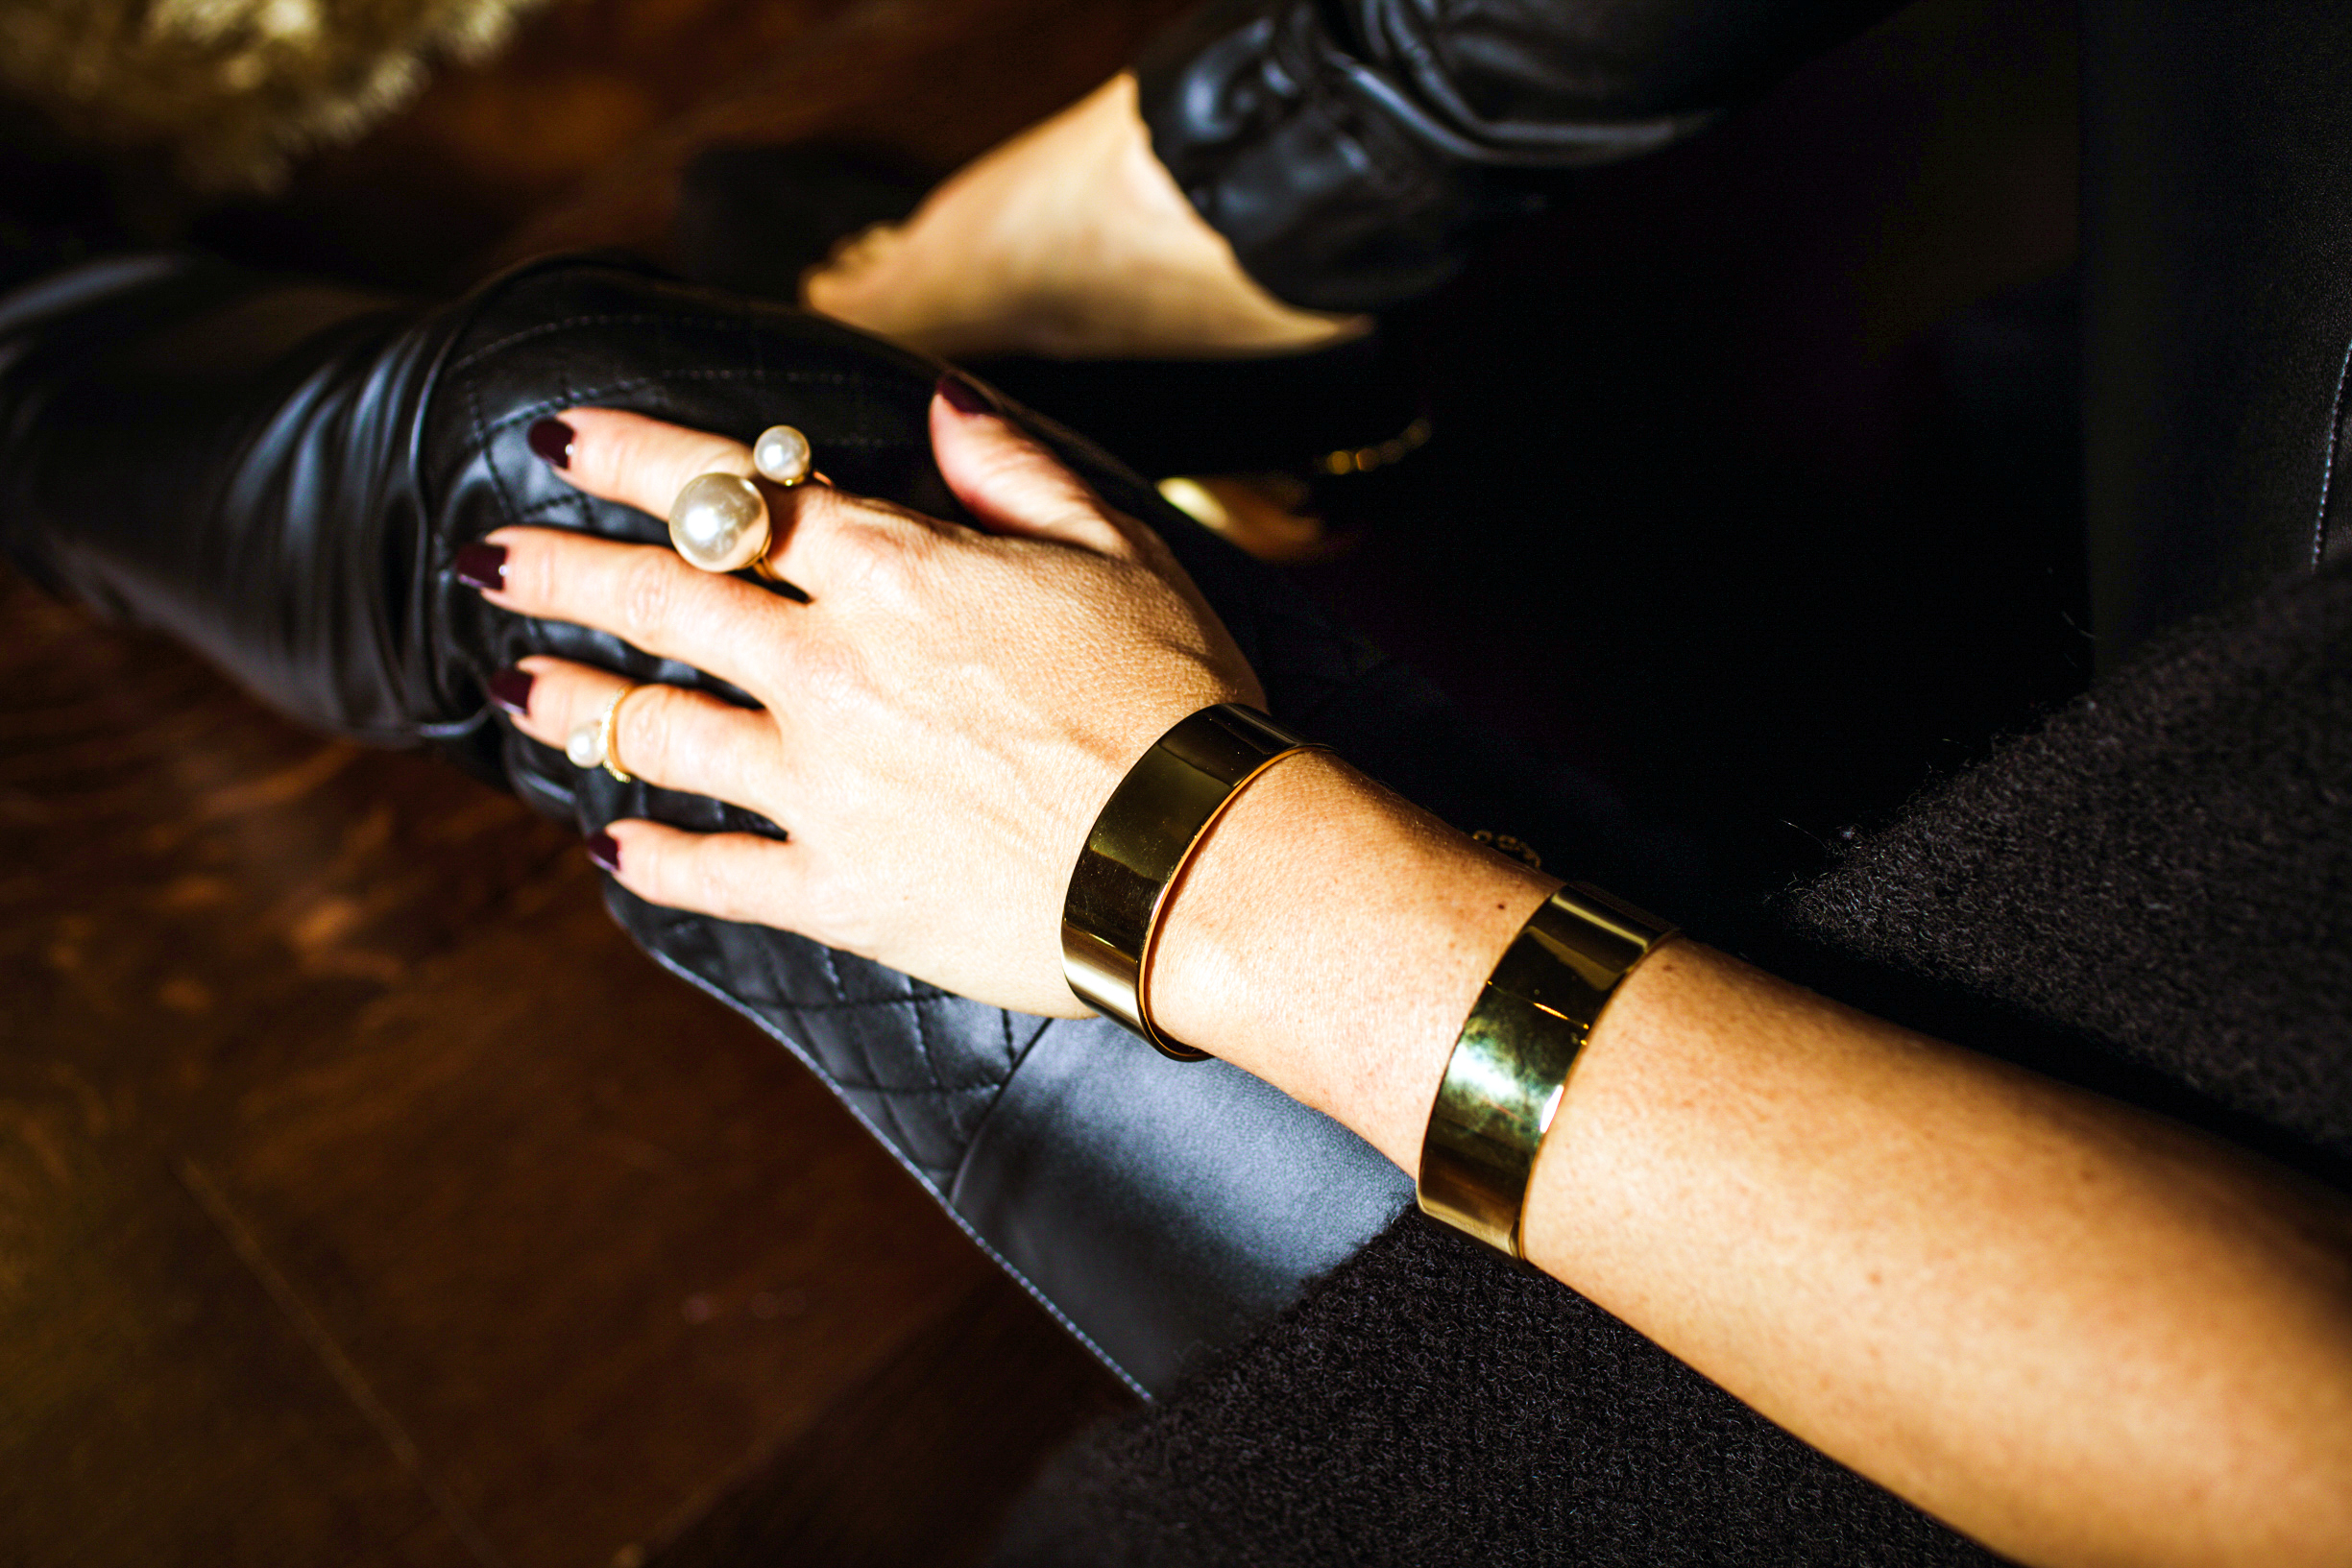 vanessa Money double cuff new social class fashion blog mademoiselle jules mlle